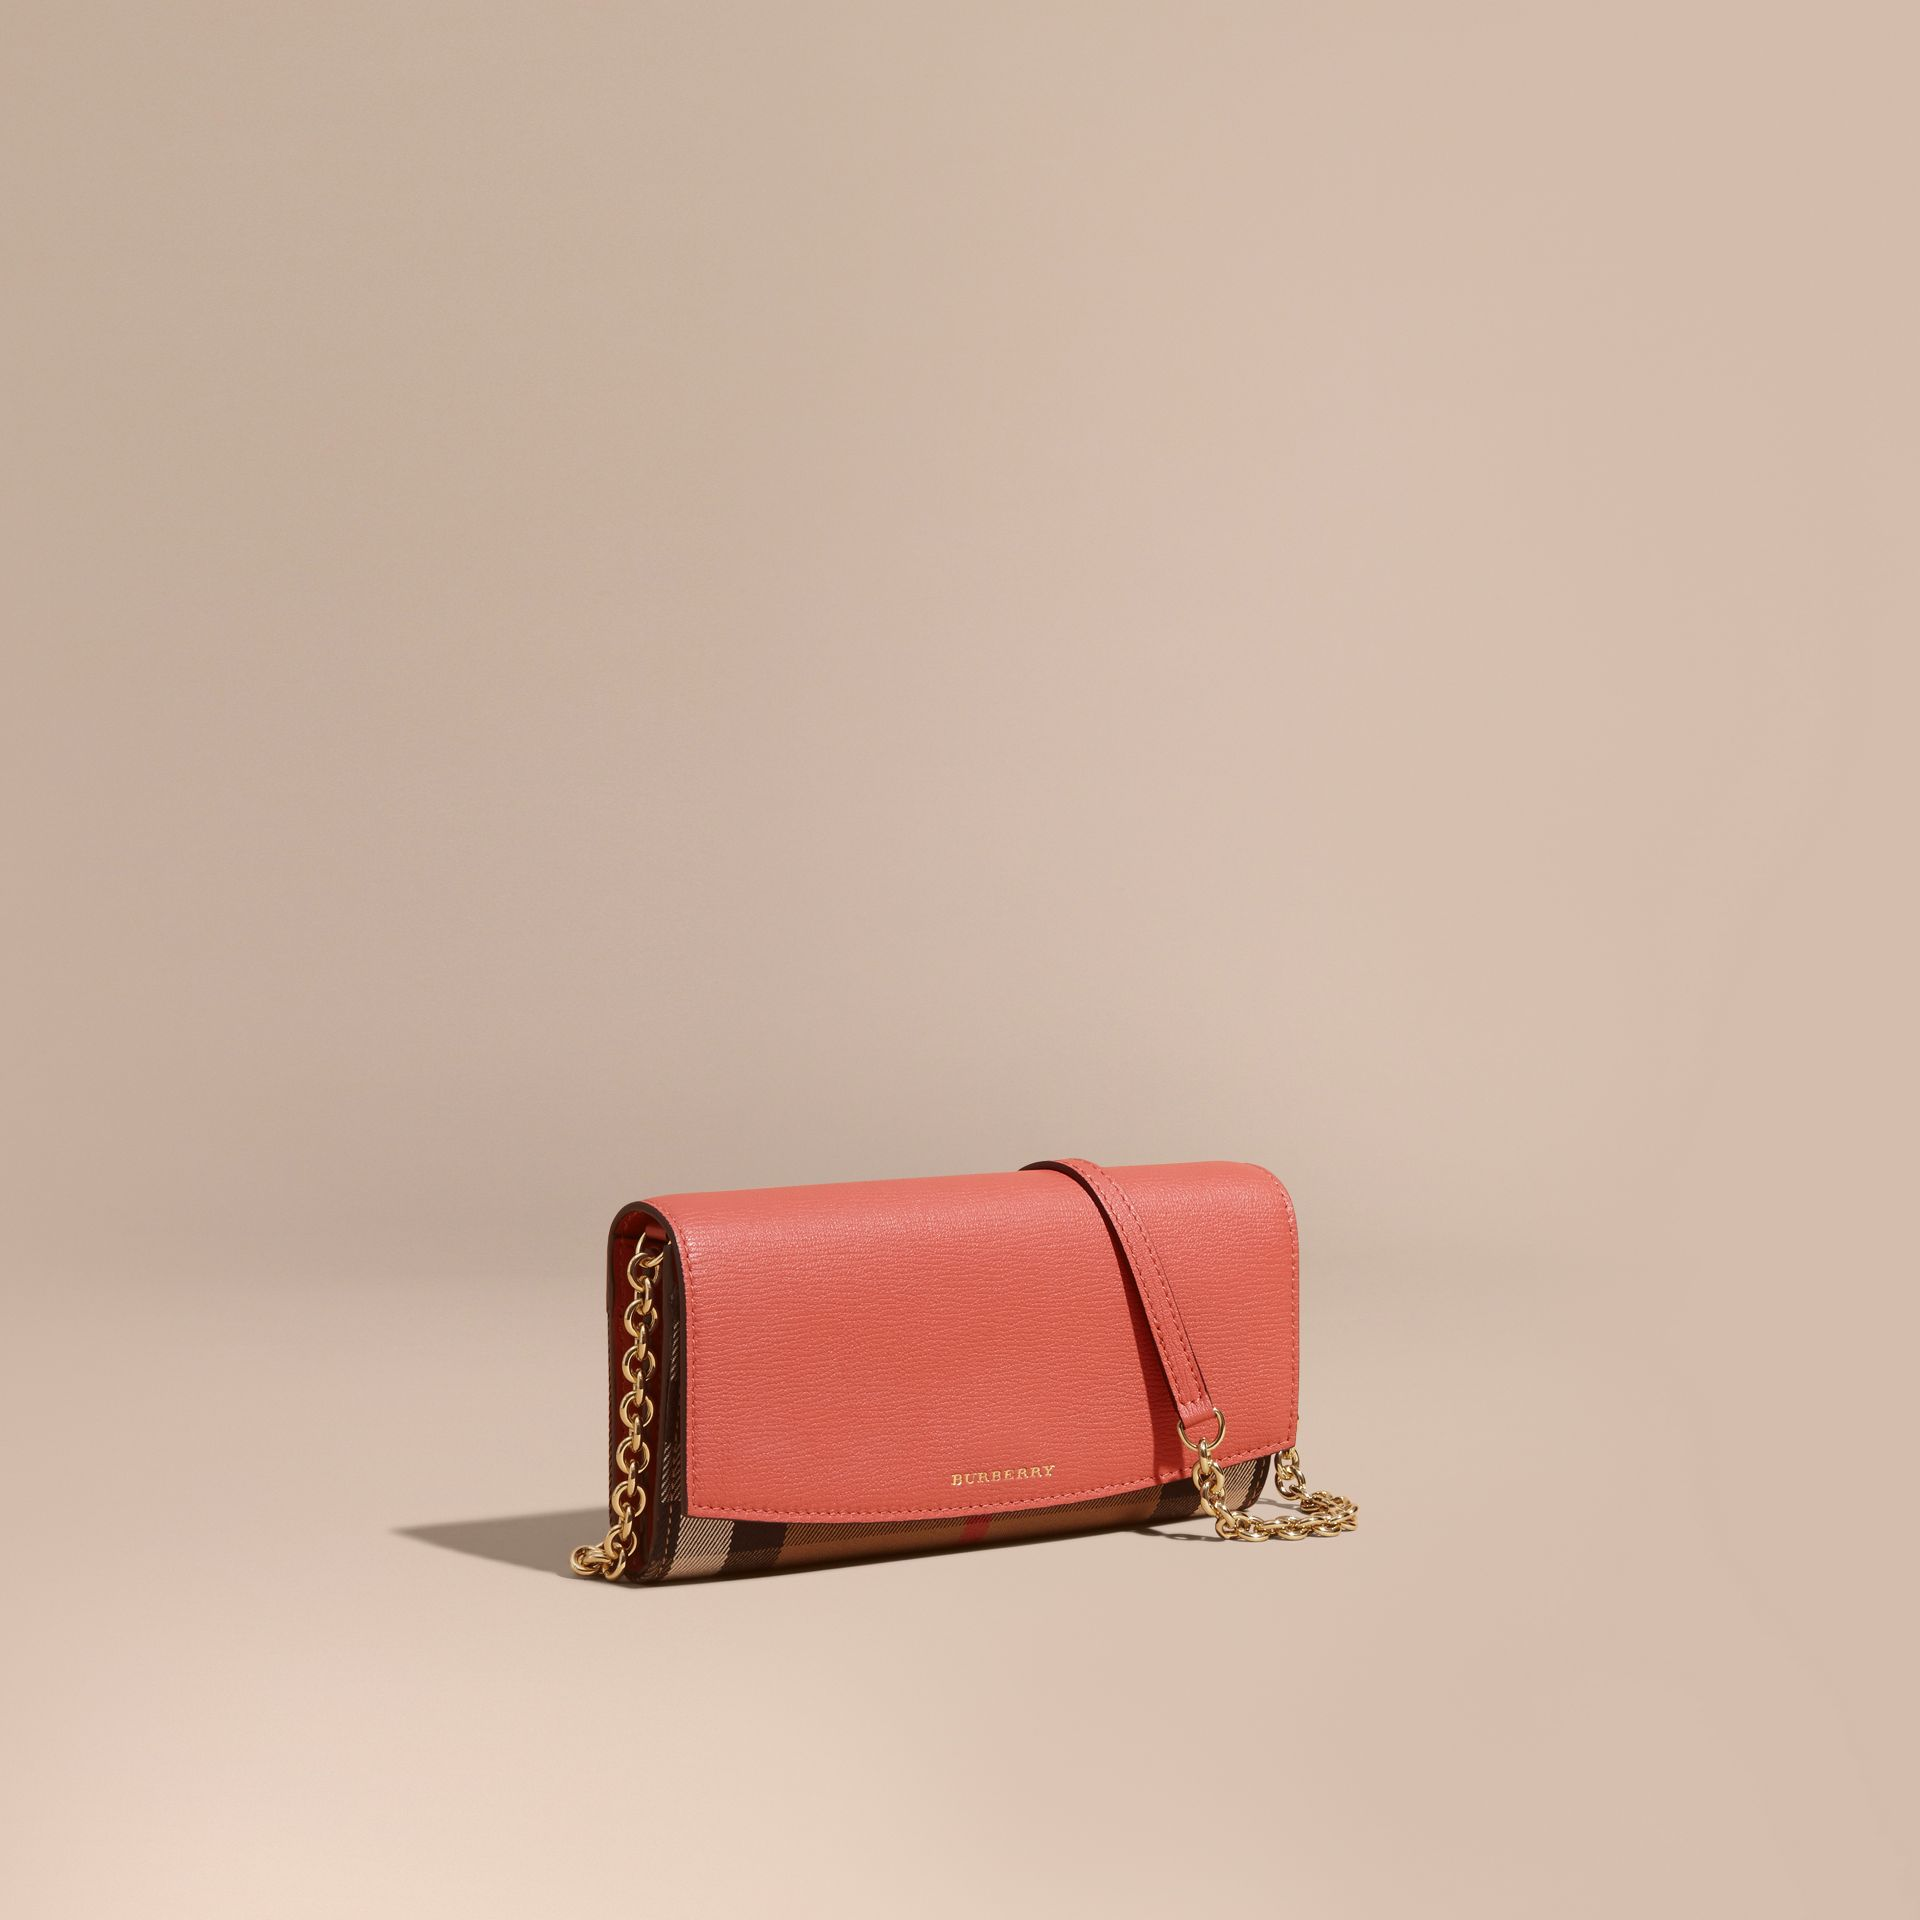 House Check and Leather Wallet with Chain in Cinnamon Red - Women | Burberry United States - gallery image 0